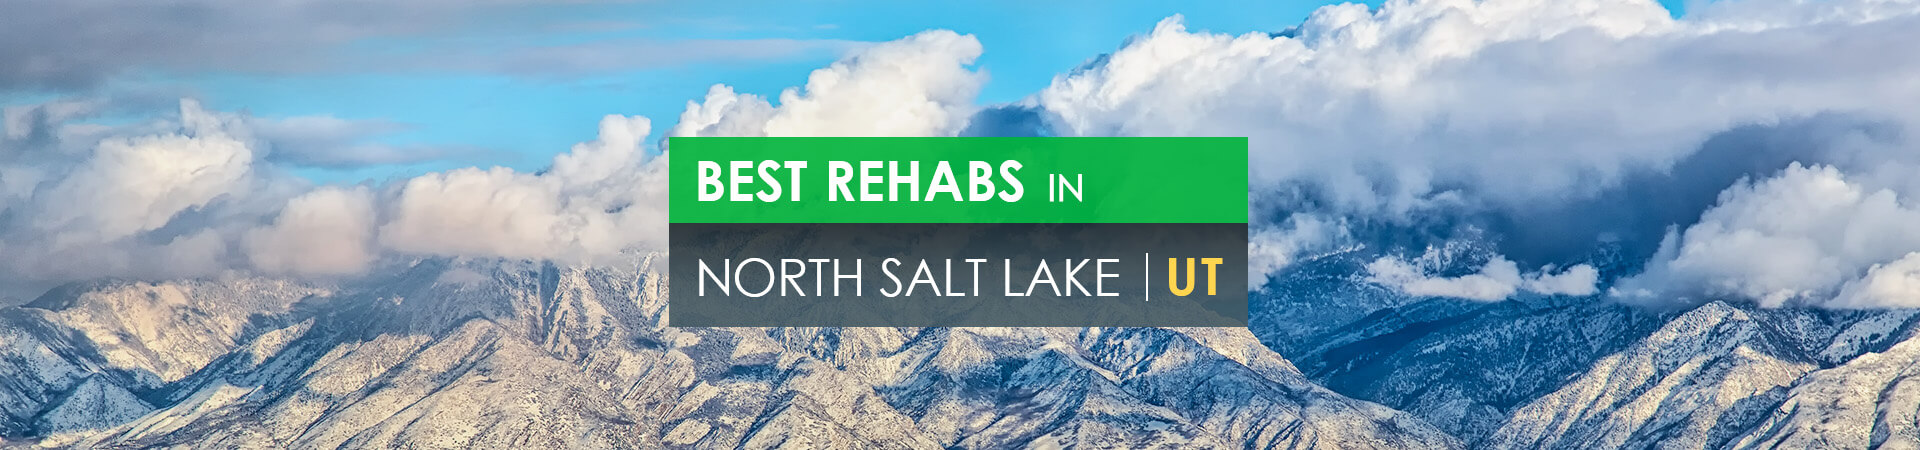 Best rehabs in North Salt Lake, UT